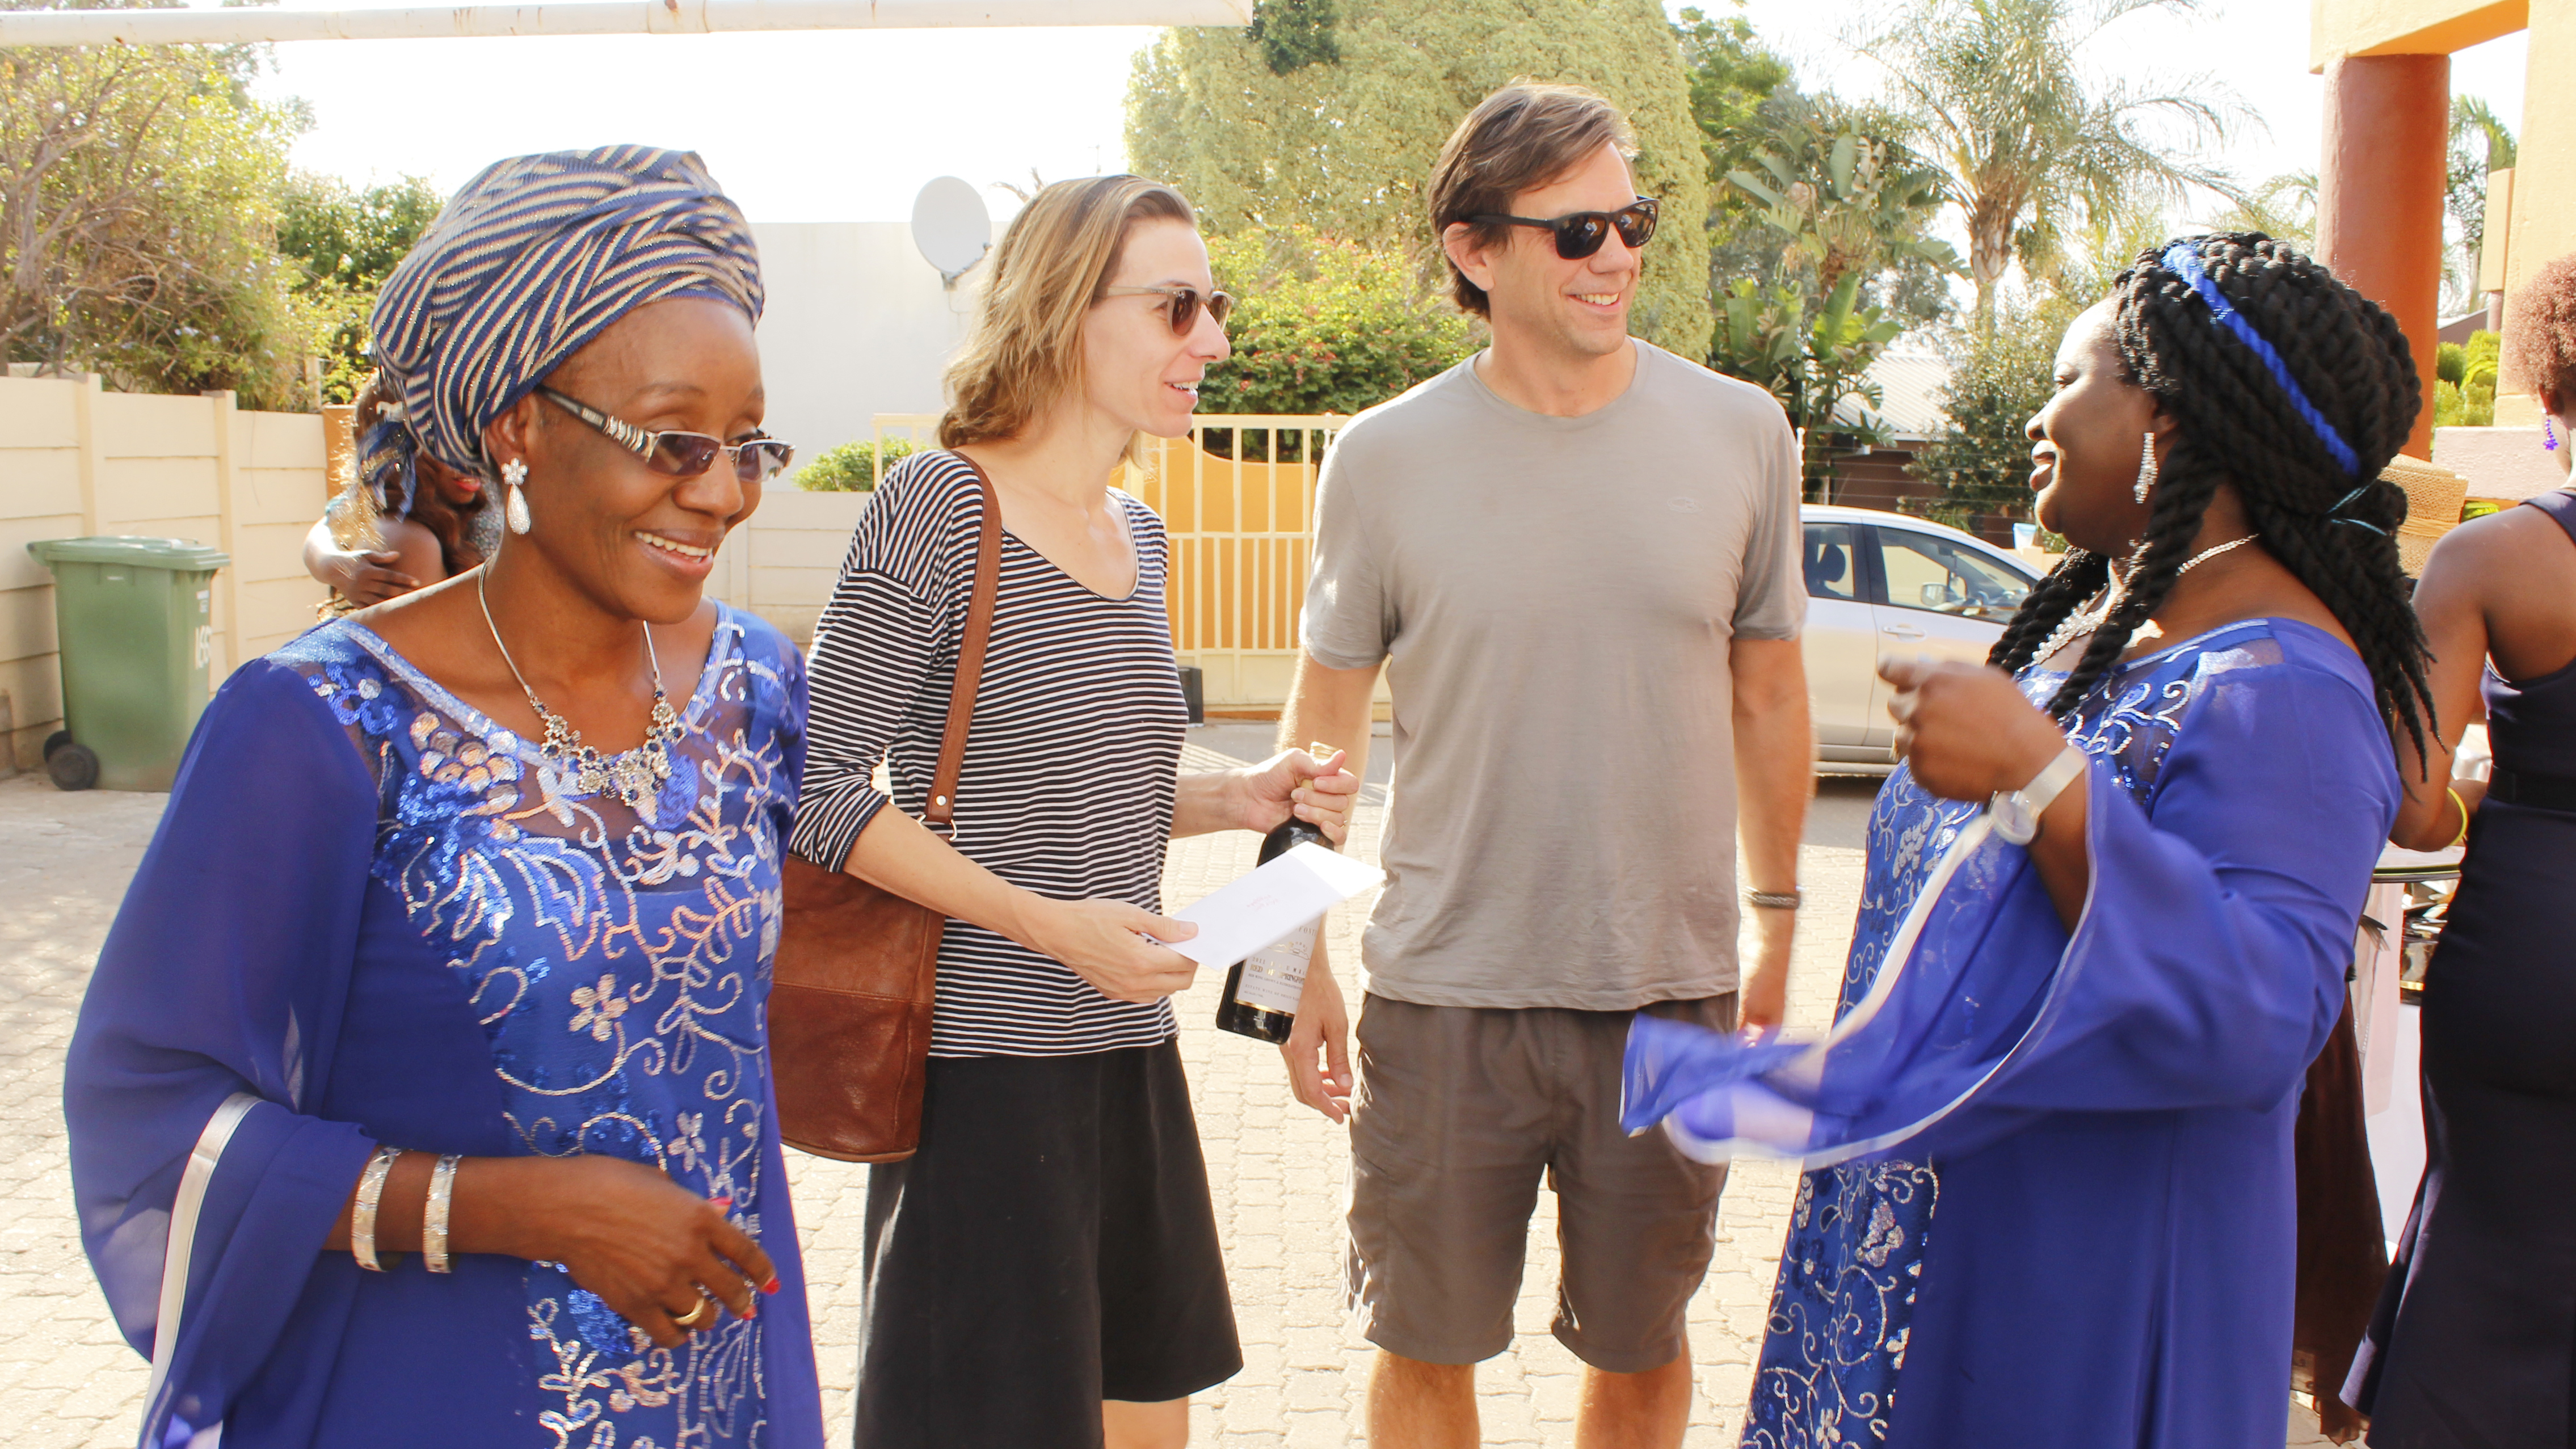 A group of people standing outside in Nigeria.